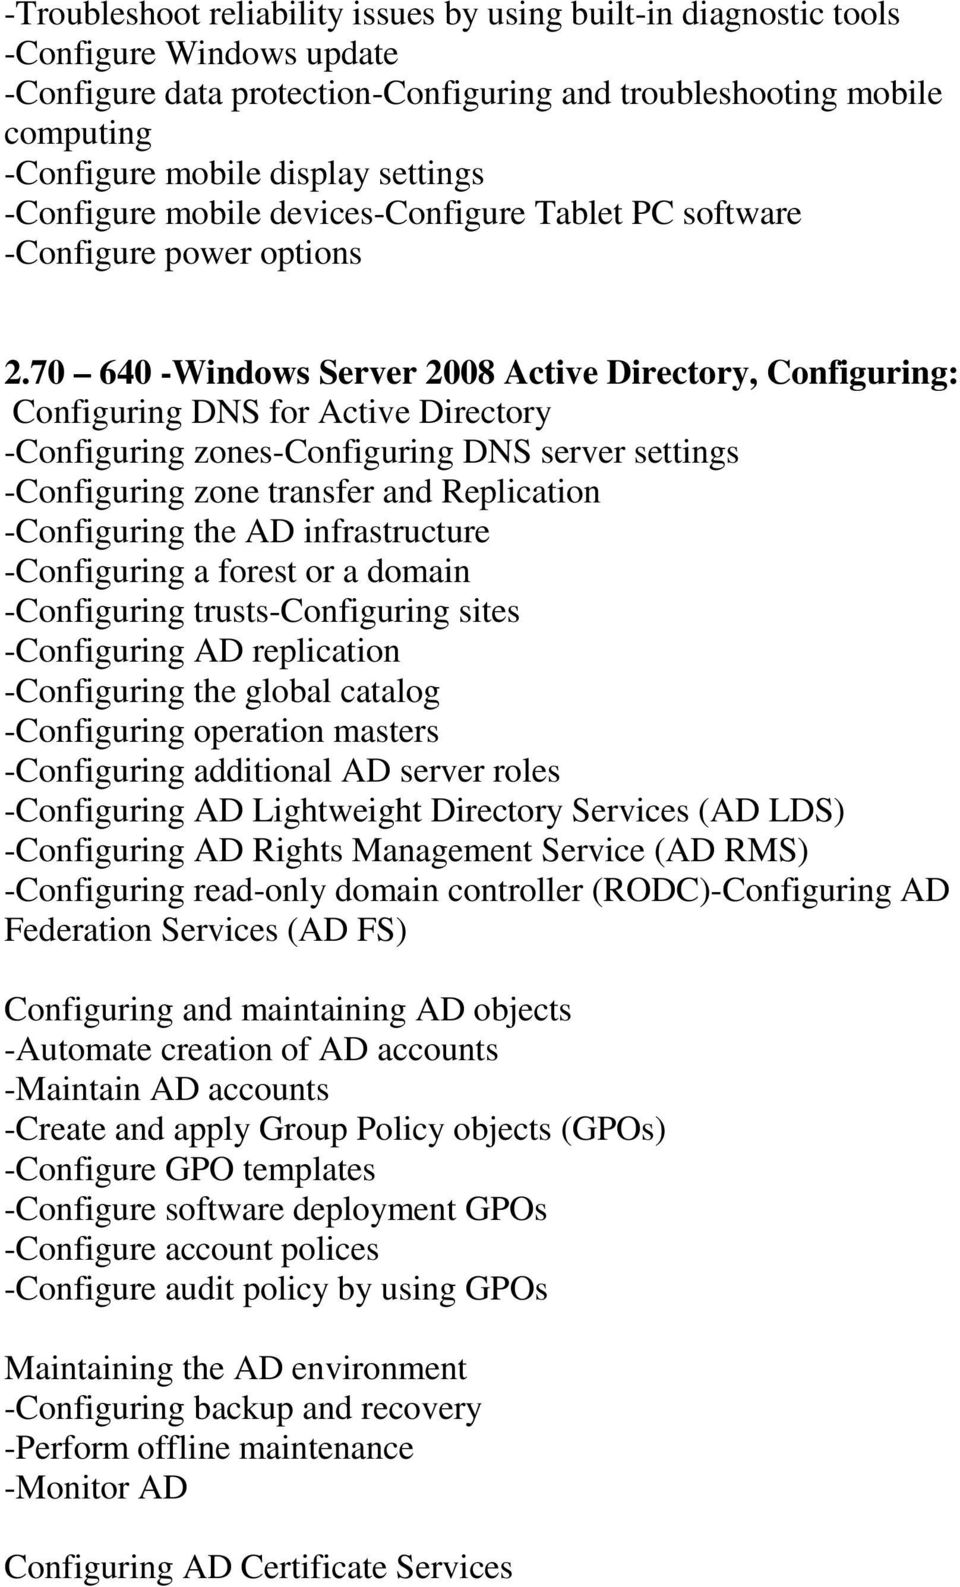 70 640 -Windows Server 2008 Active Directory, Configuring: Configuring DNS for Active Directory -Configuring zones-configuring DNS server settings -Configuring zone transfer and Replication